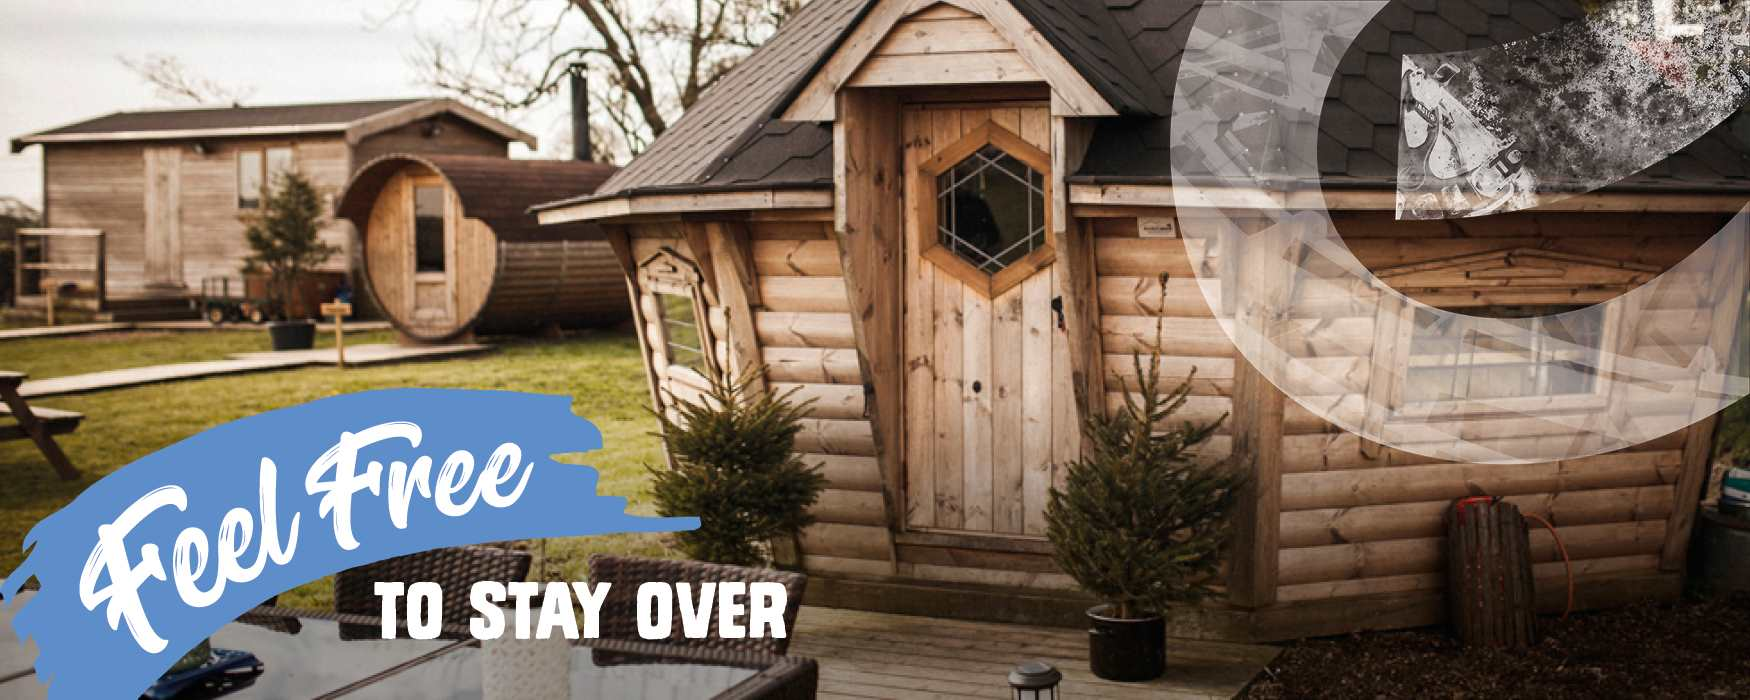 Feel Free to stay over in Staffordshire. Self-catering glamping yurt accommodation